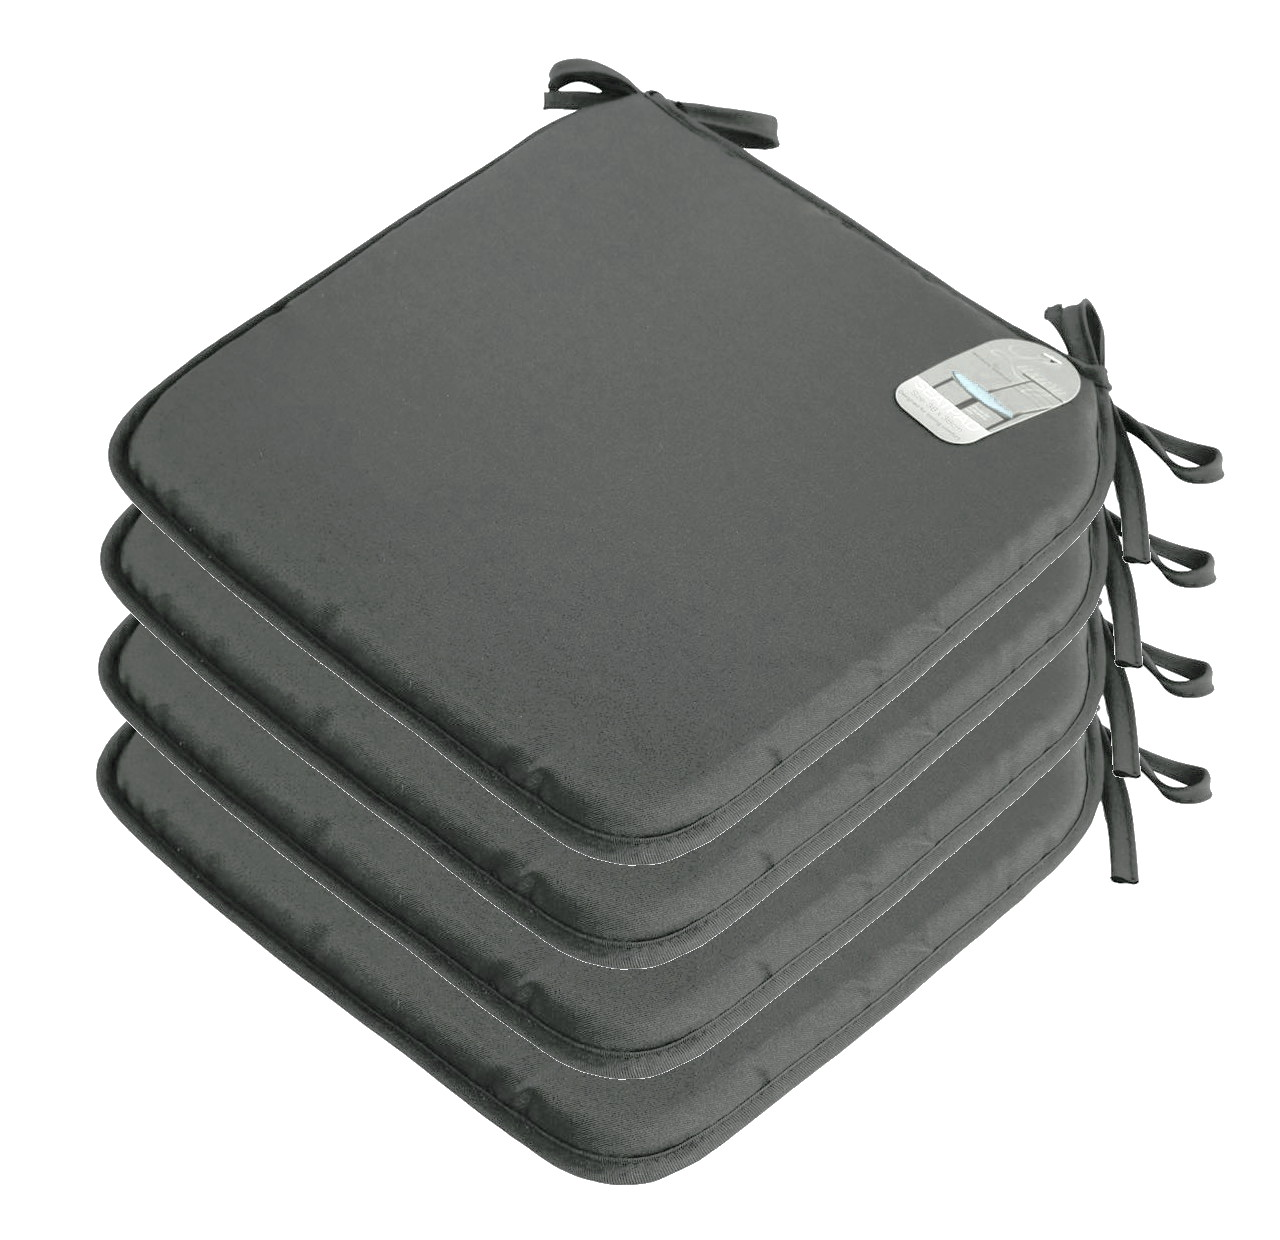 4 x Plain Seat Pad Tie On Chair Foam Cushion For Office  : seat pad Charcoal from www.ebay.co.uk size 1280 x 1240 jpeg 213kB